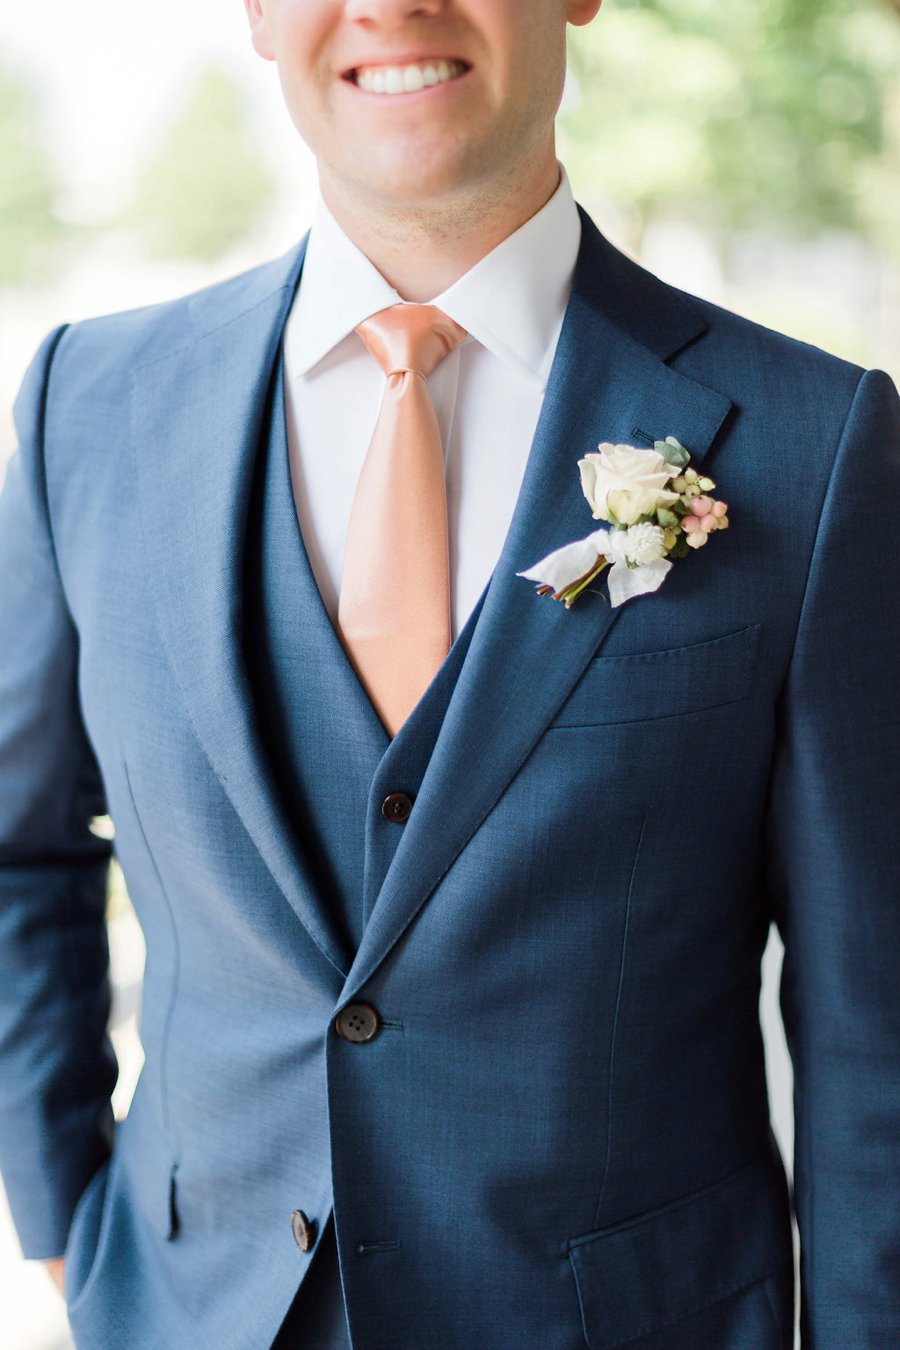 Colorful Wedding Suit Hire Manchester Photos - Wedding Dress Ideas ...